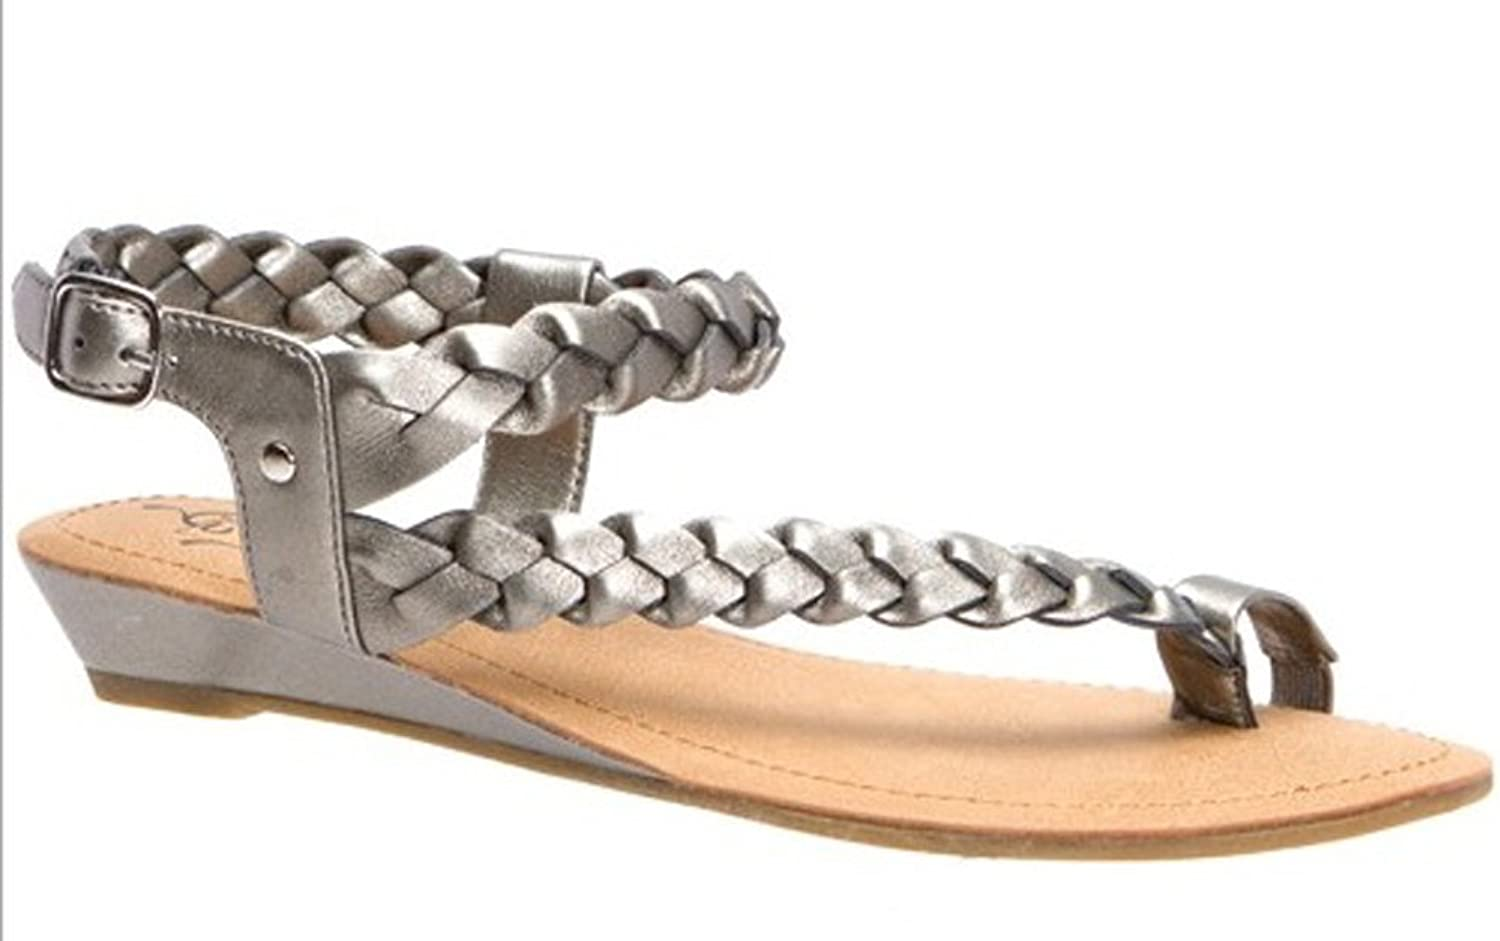 Kenneth Cole Unlisted coloring Book Womens Sandals Pewter 7.5